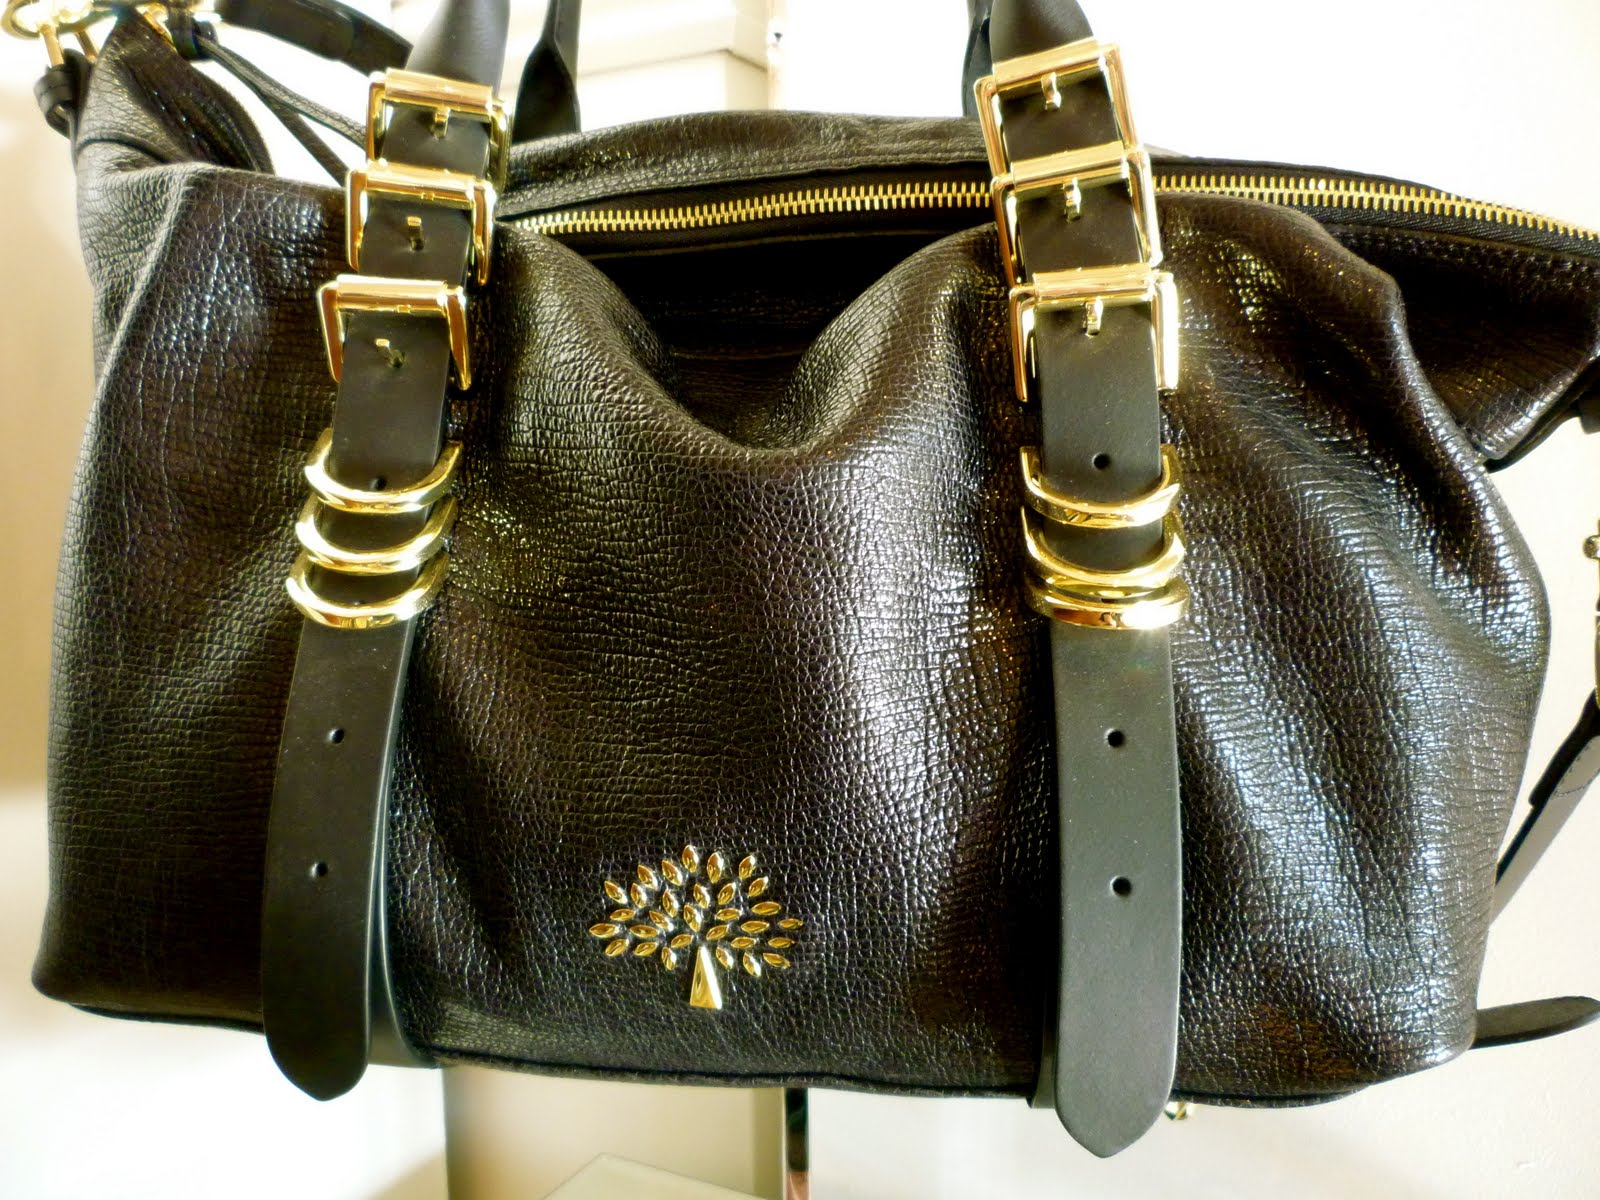 ae6b1d739c9f ... czech check out the bag its the mila bag from mulberry. i love it.